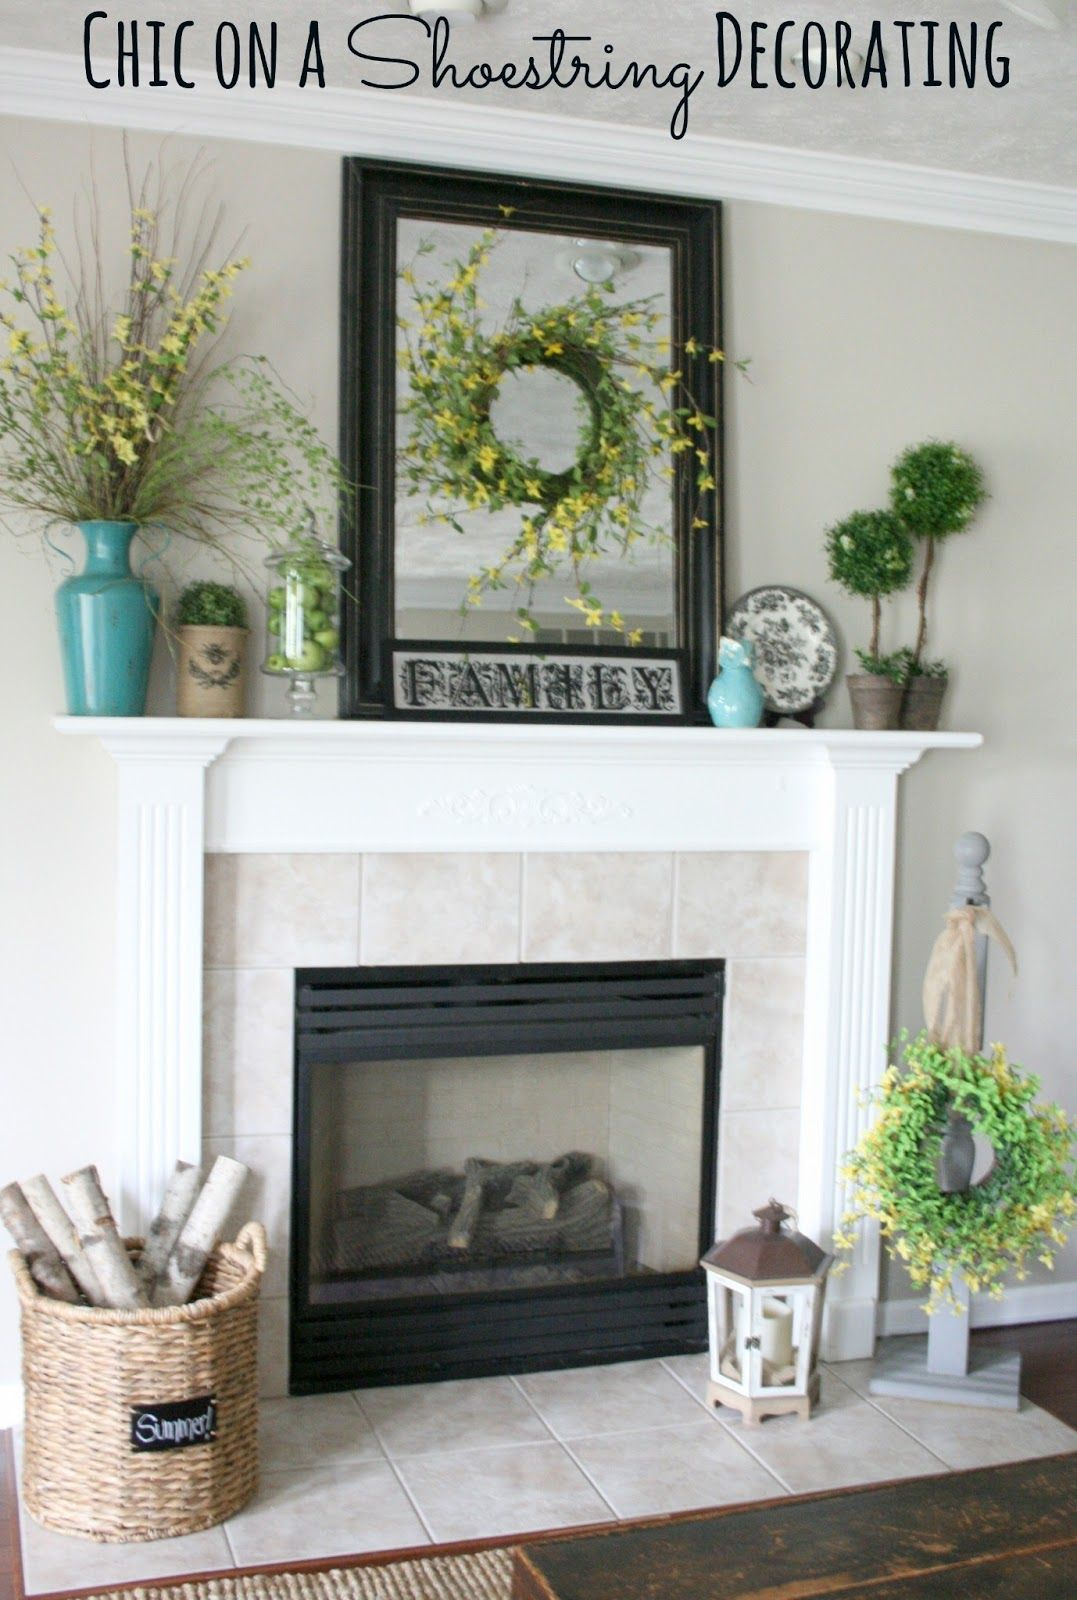 Do It Yourself And Save Tons Of Cash | Decor, Summer mantel ...